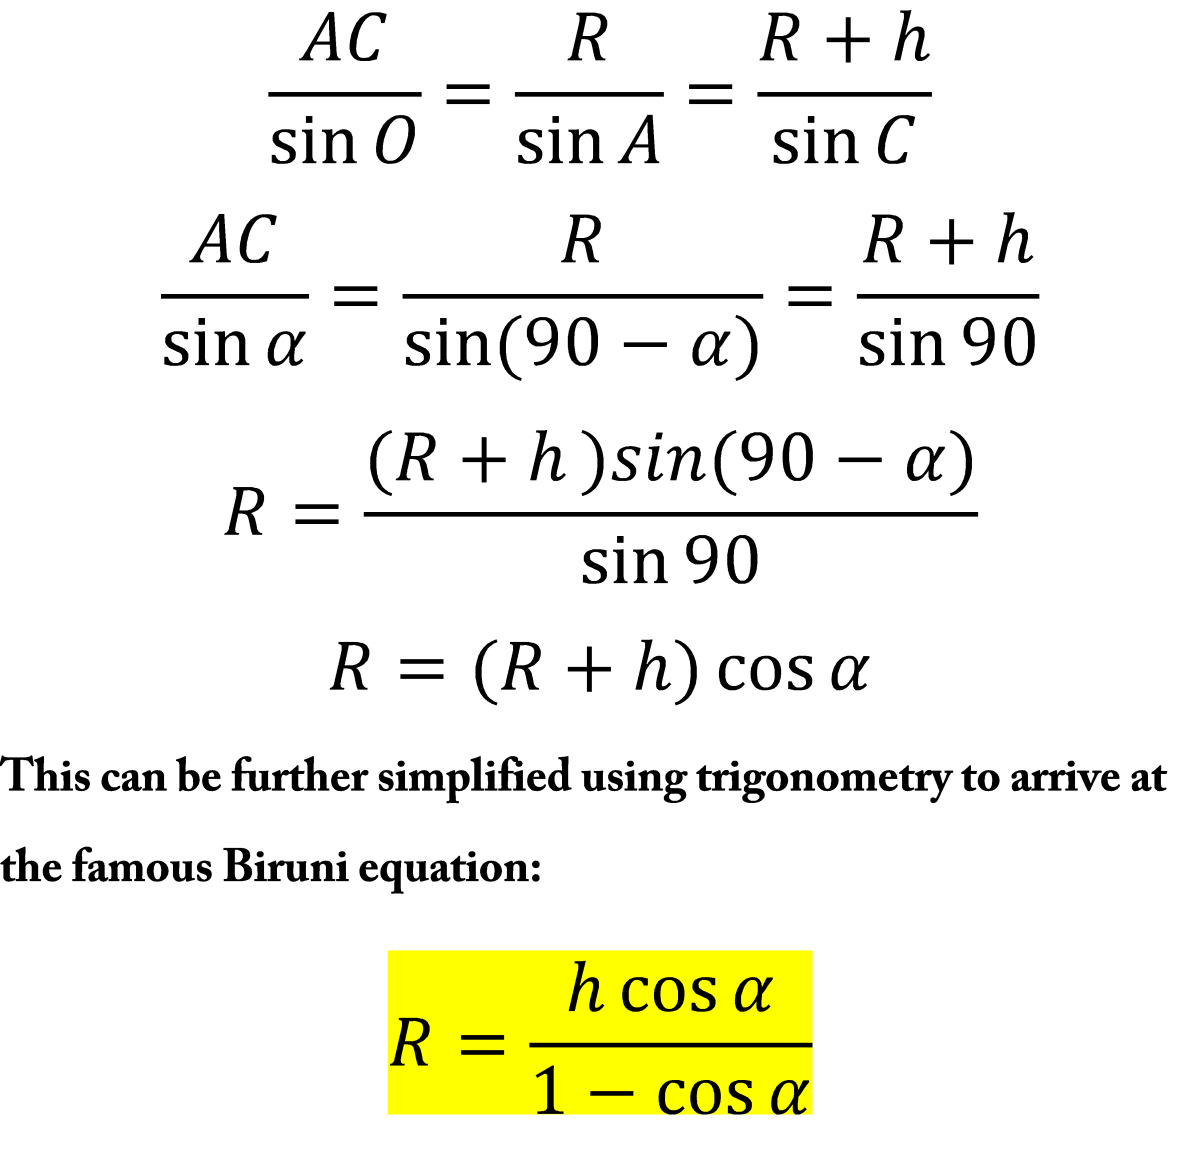 Trigonometric simplification leading to the Biruni Equation.